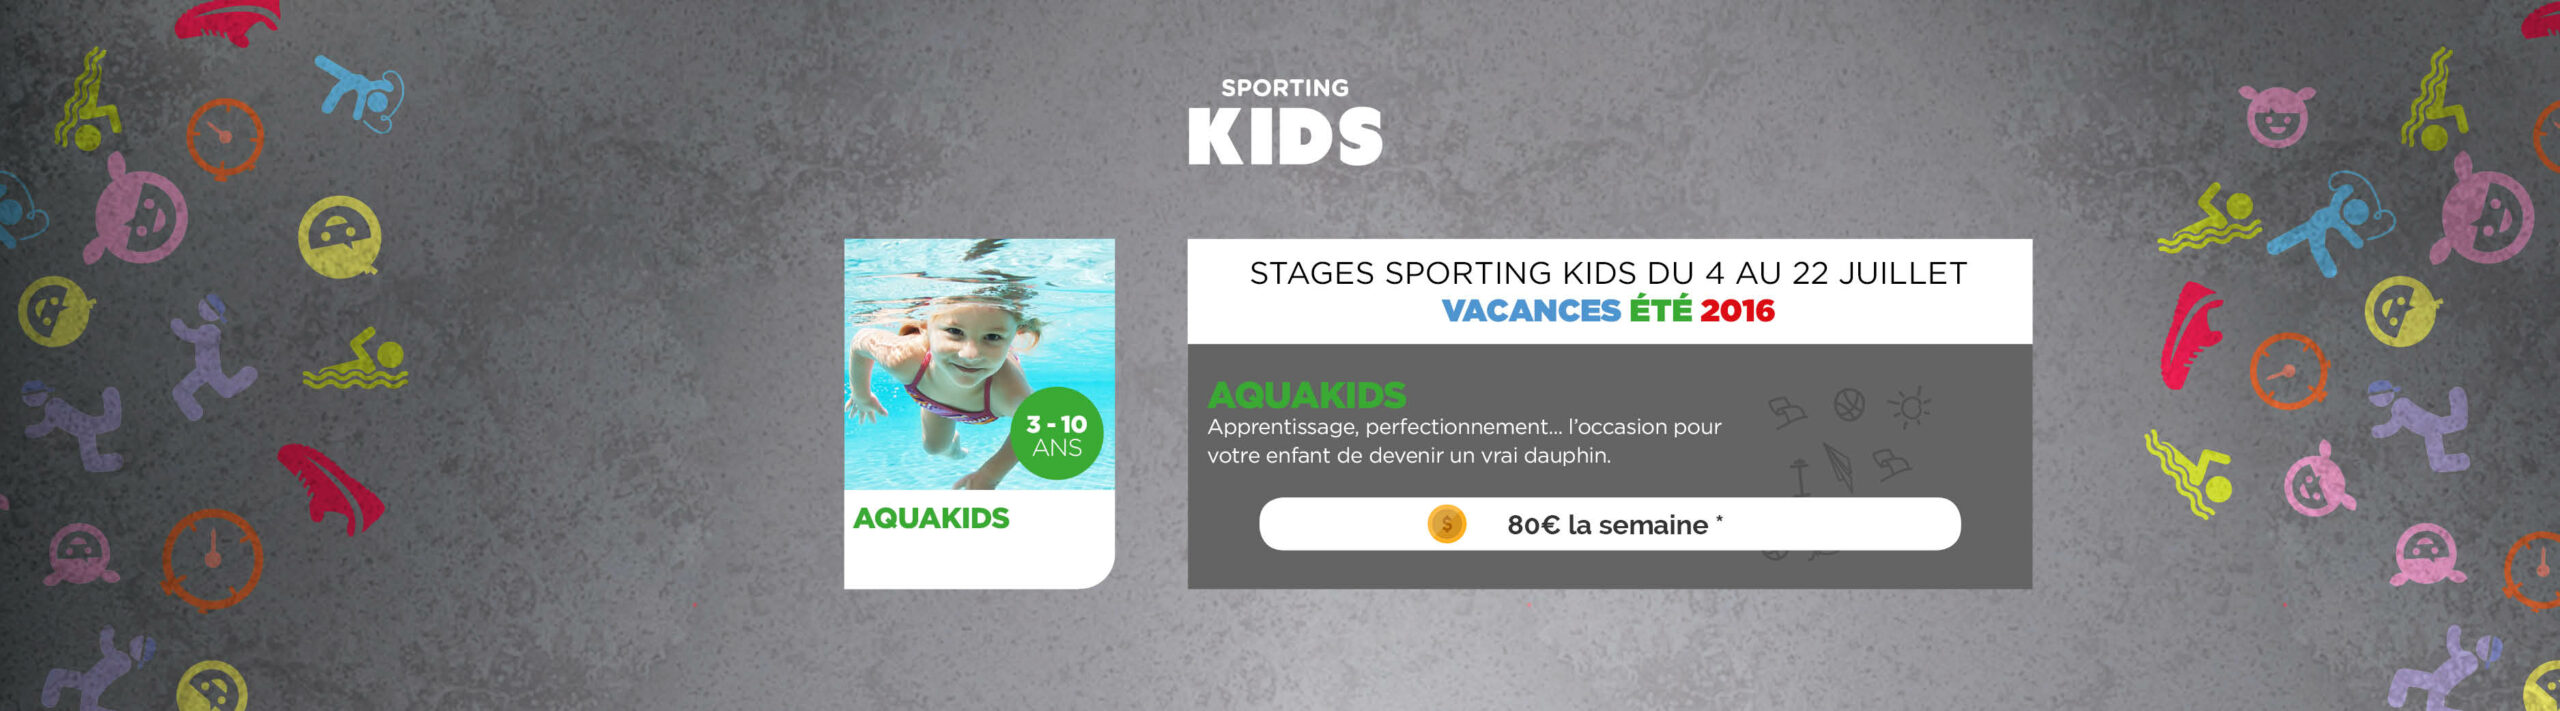 Aquakids - stage d'été - Sporting Form'